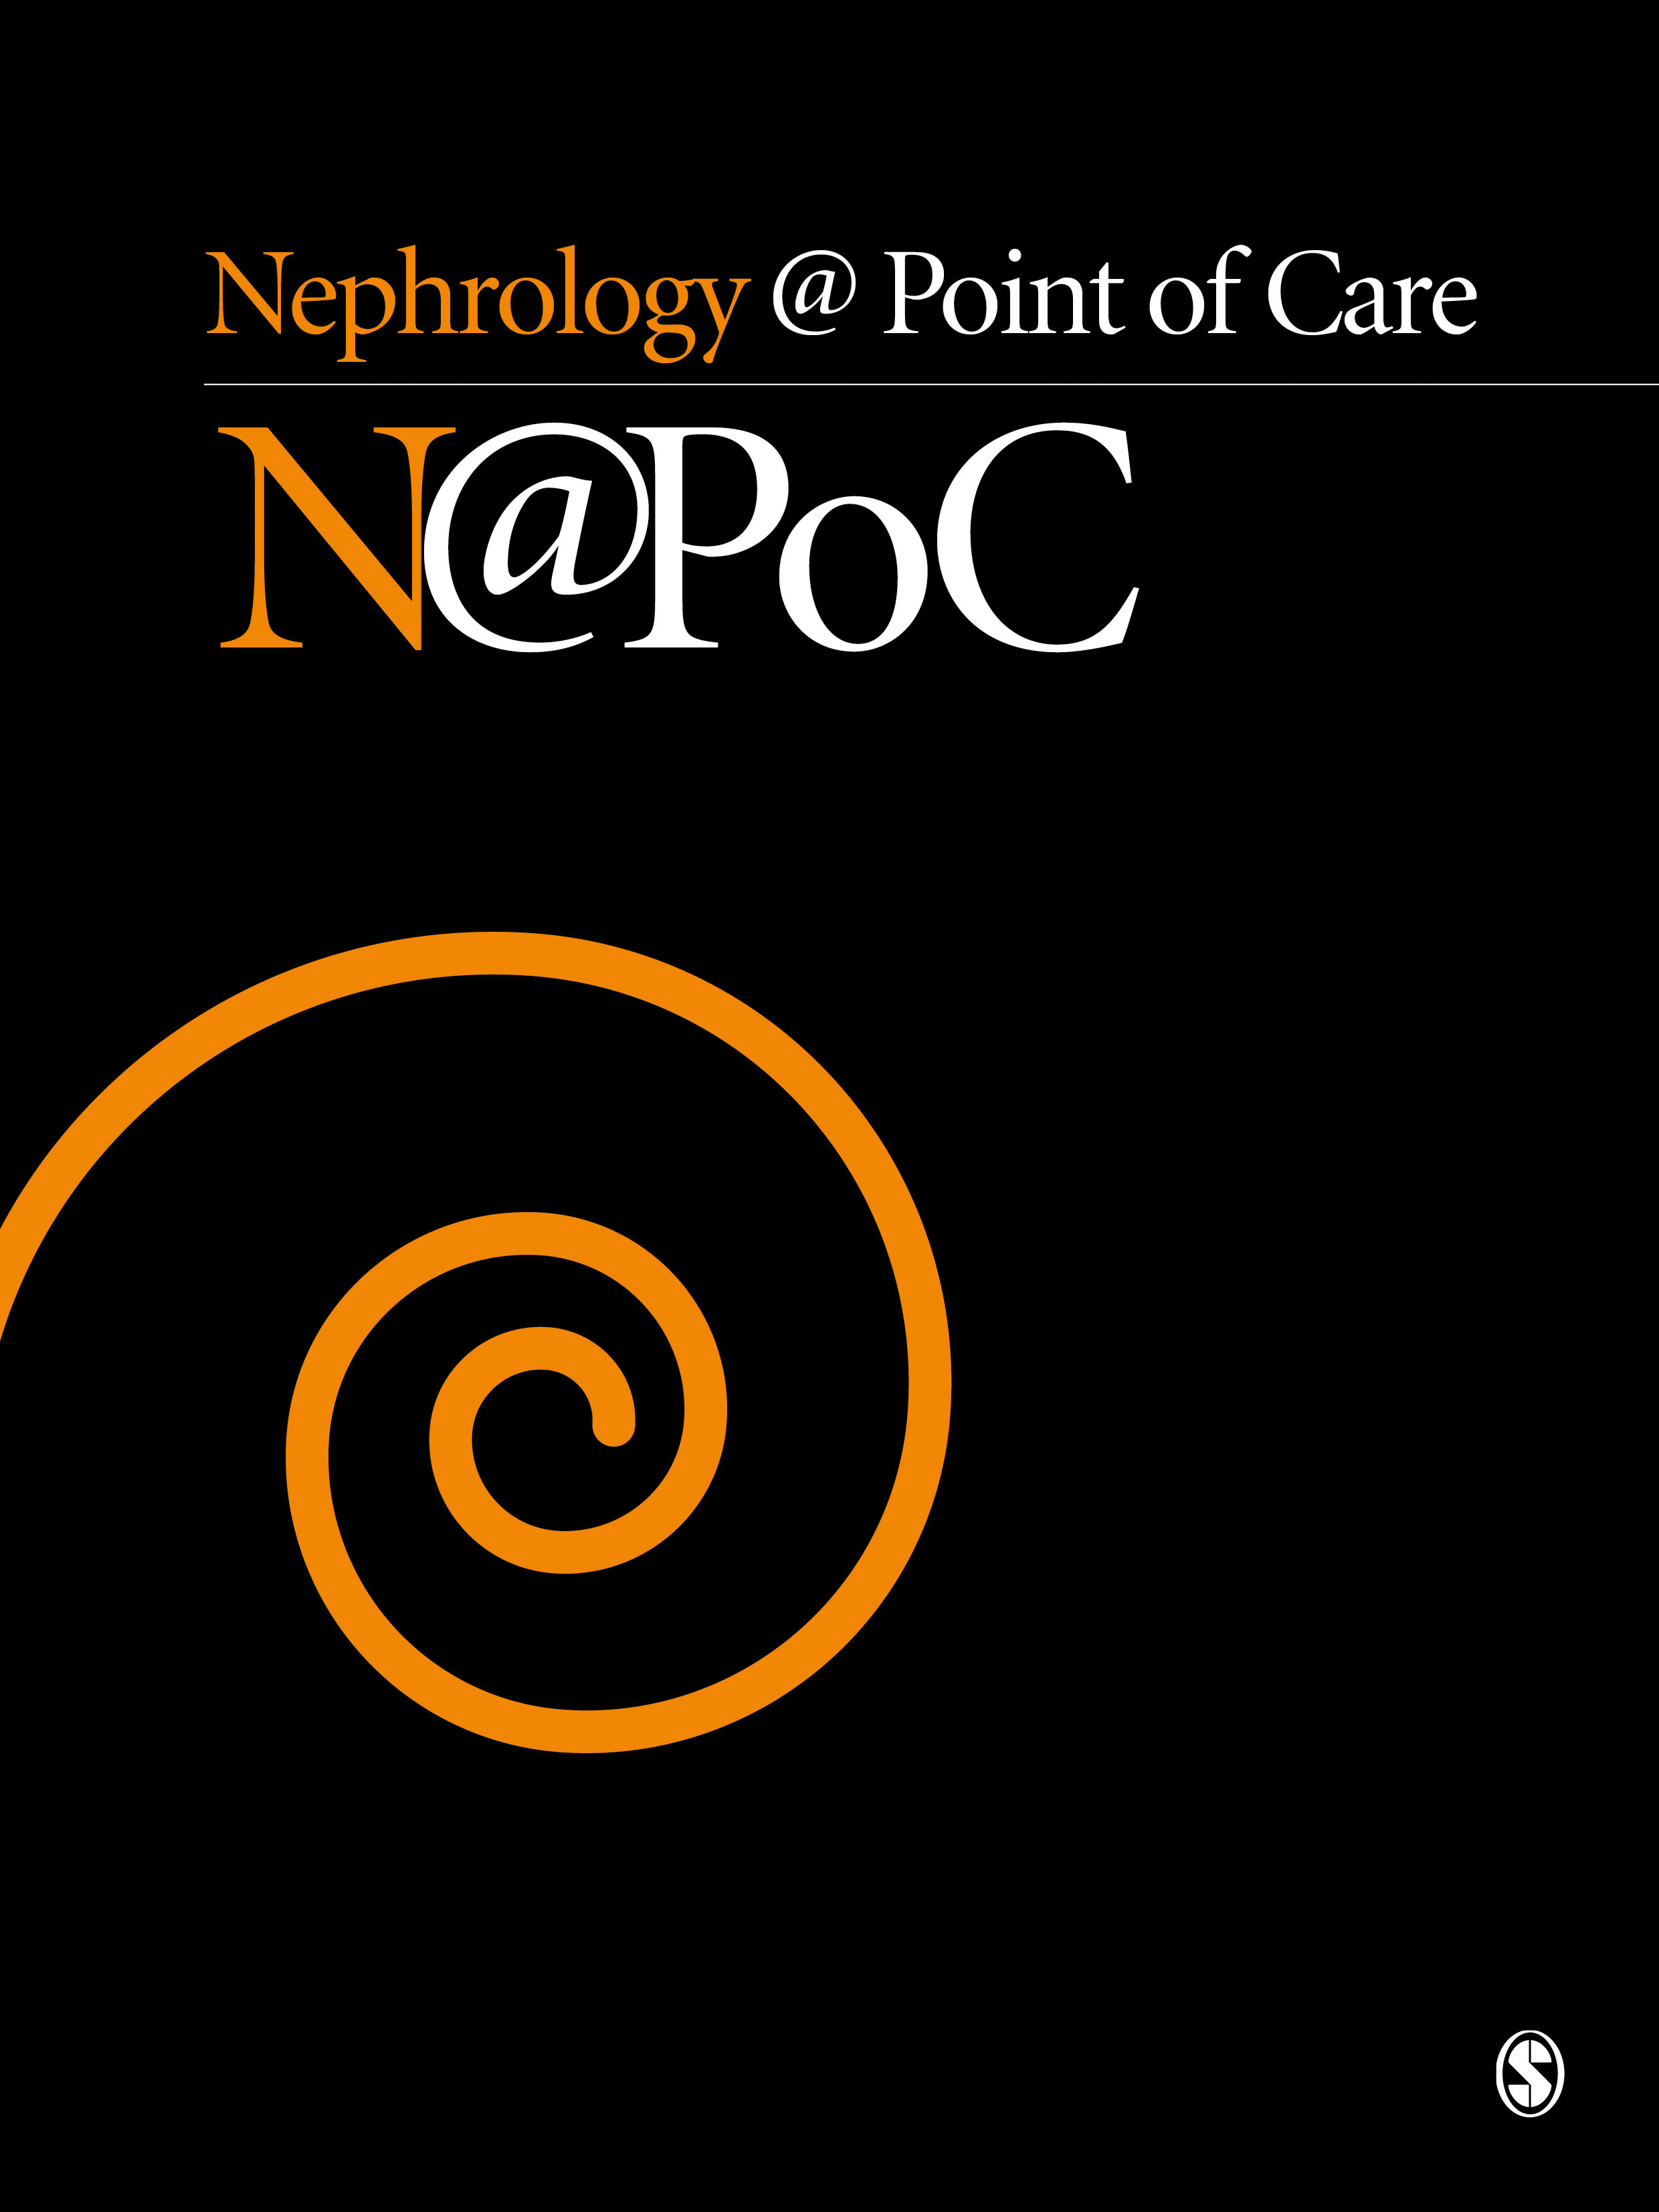 Nephrology @ Point of Care